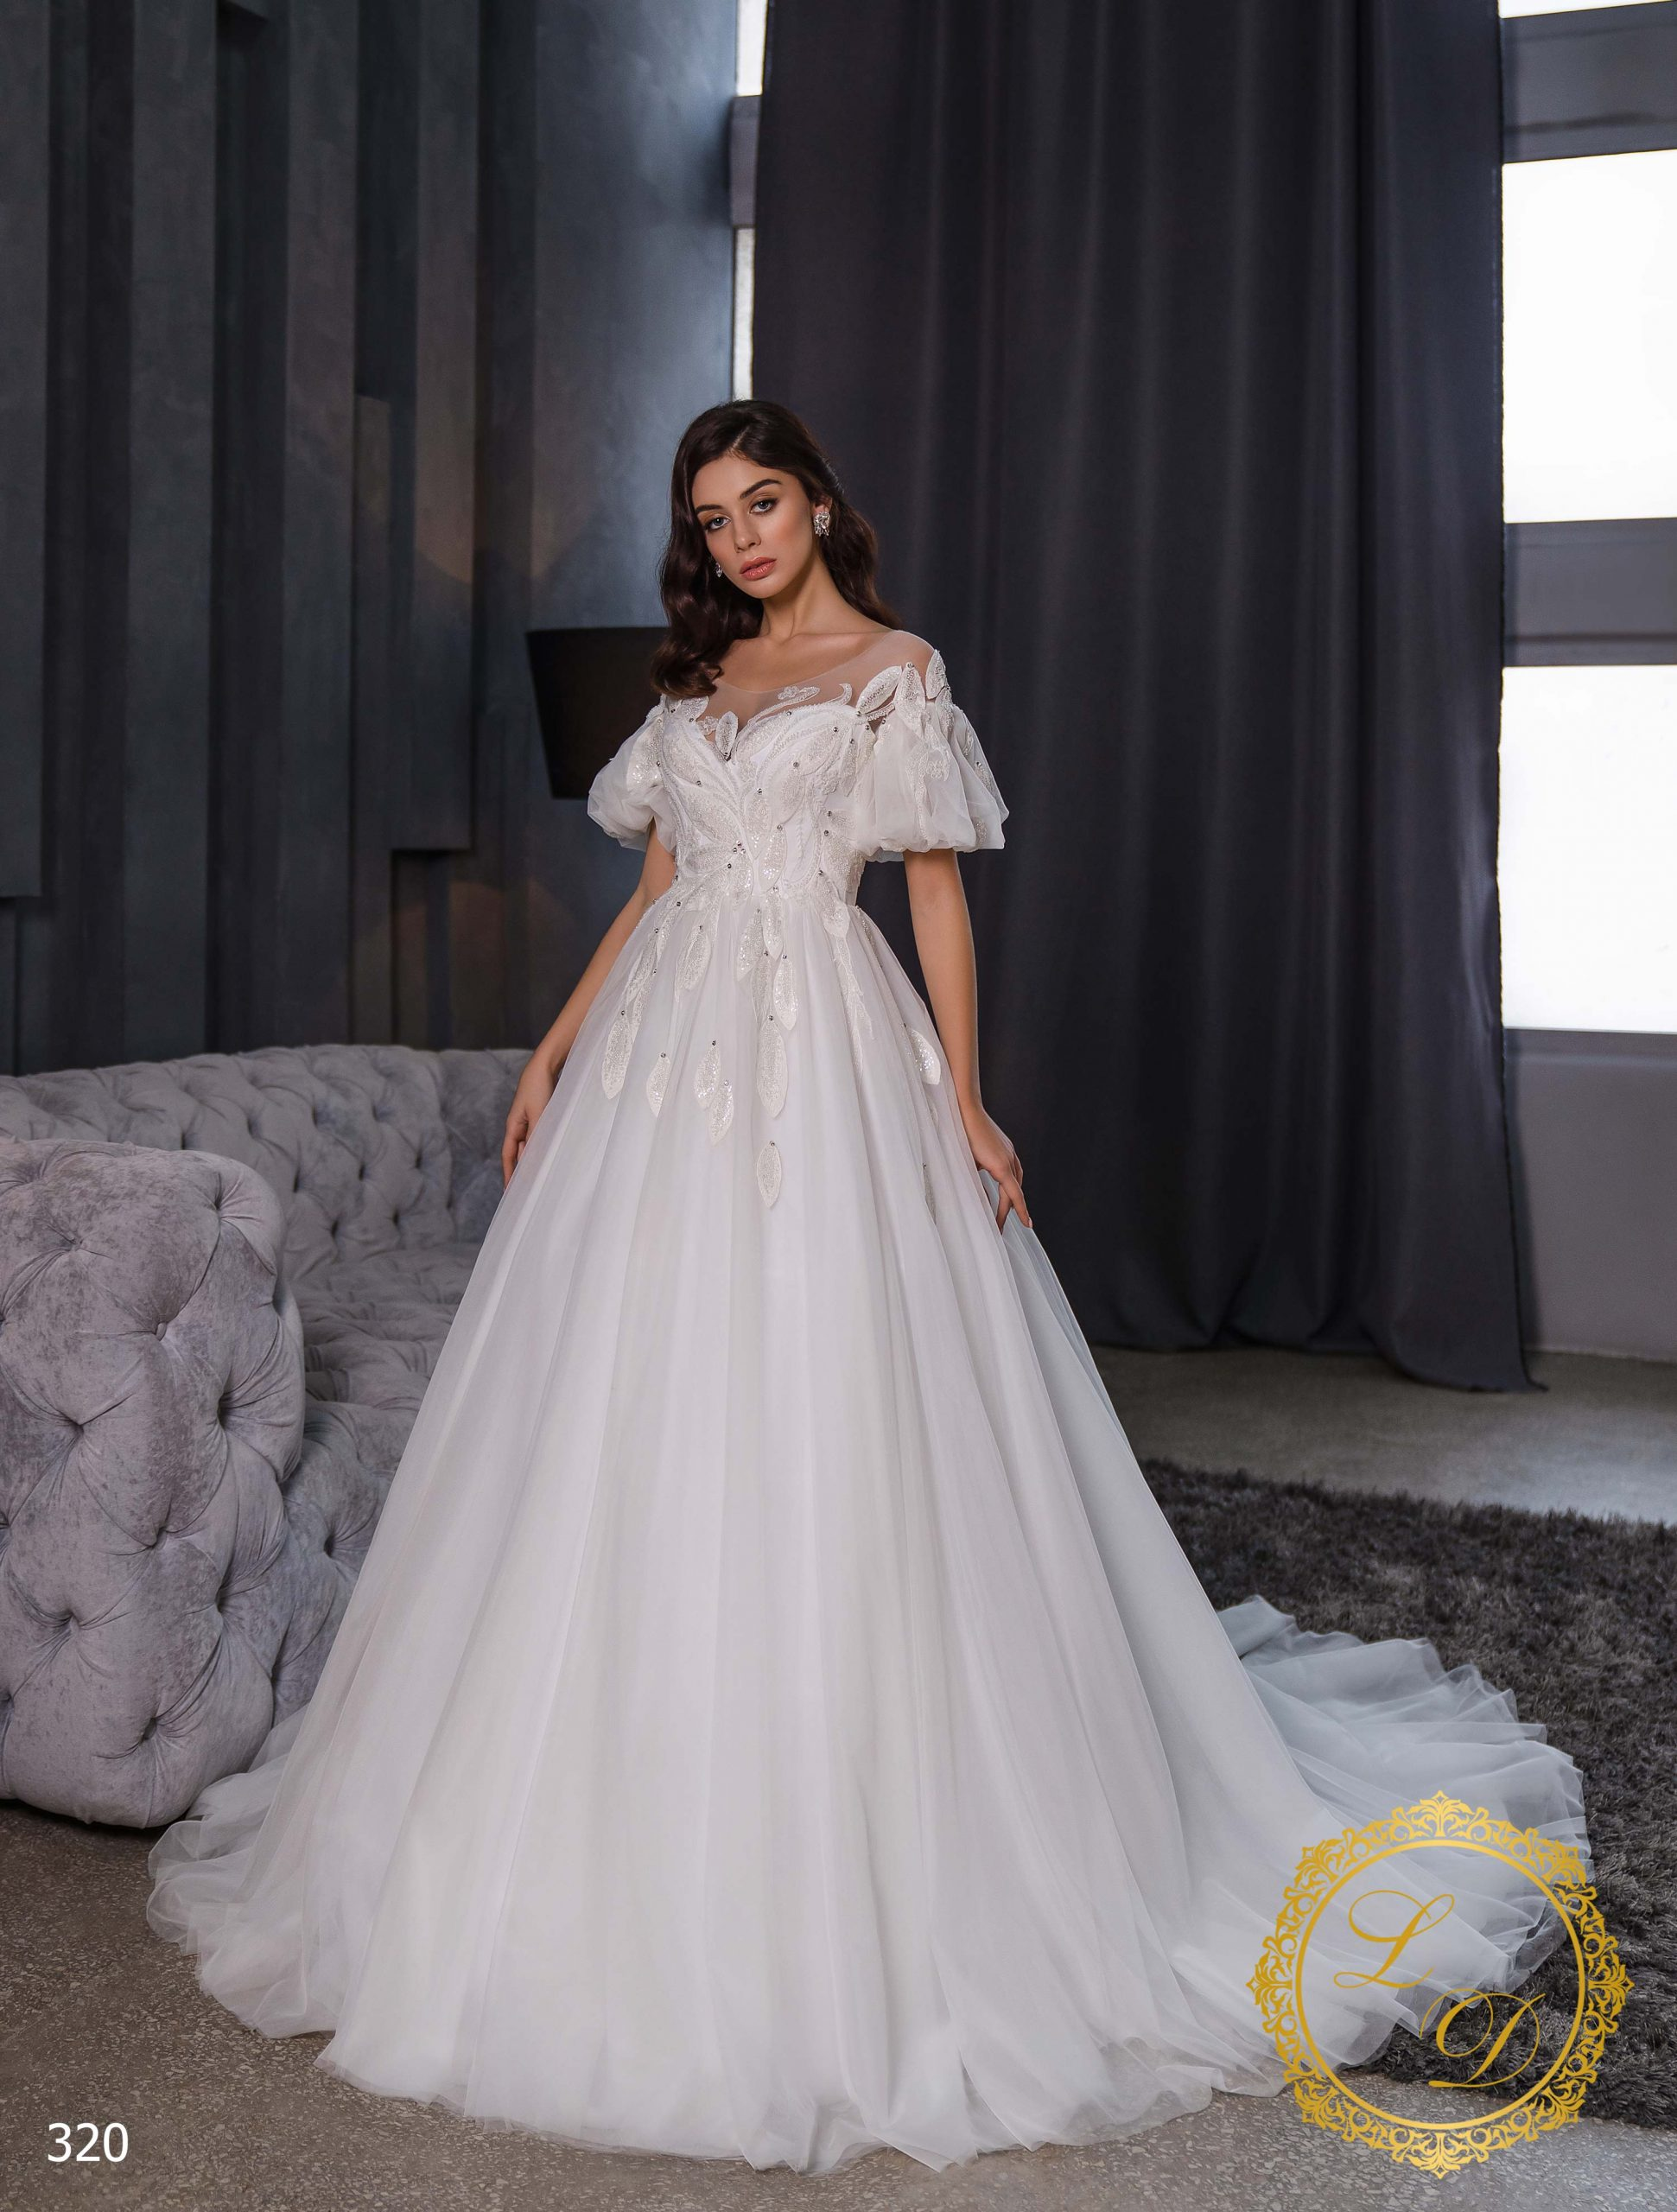 Wedding Dress Lady Di 320-1